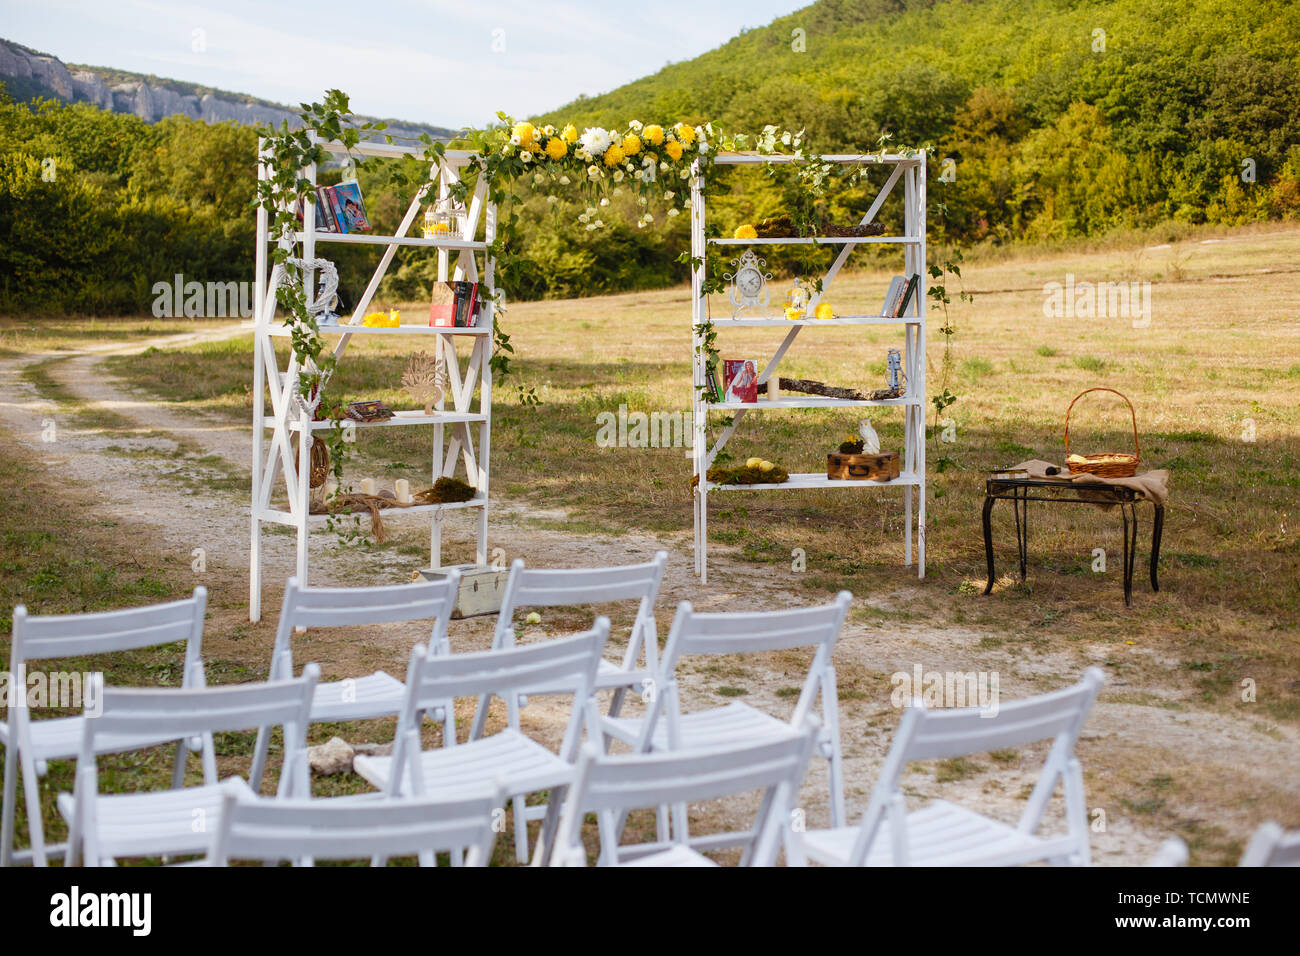 Happy Outdoor Ceremony Scene For A Summer Mountain Wedding. Wed Aisle,  Decorated Alter And Flower Decorations With Mountains In The Background.